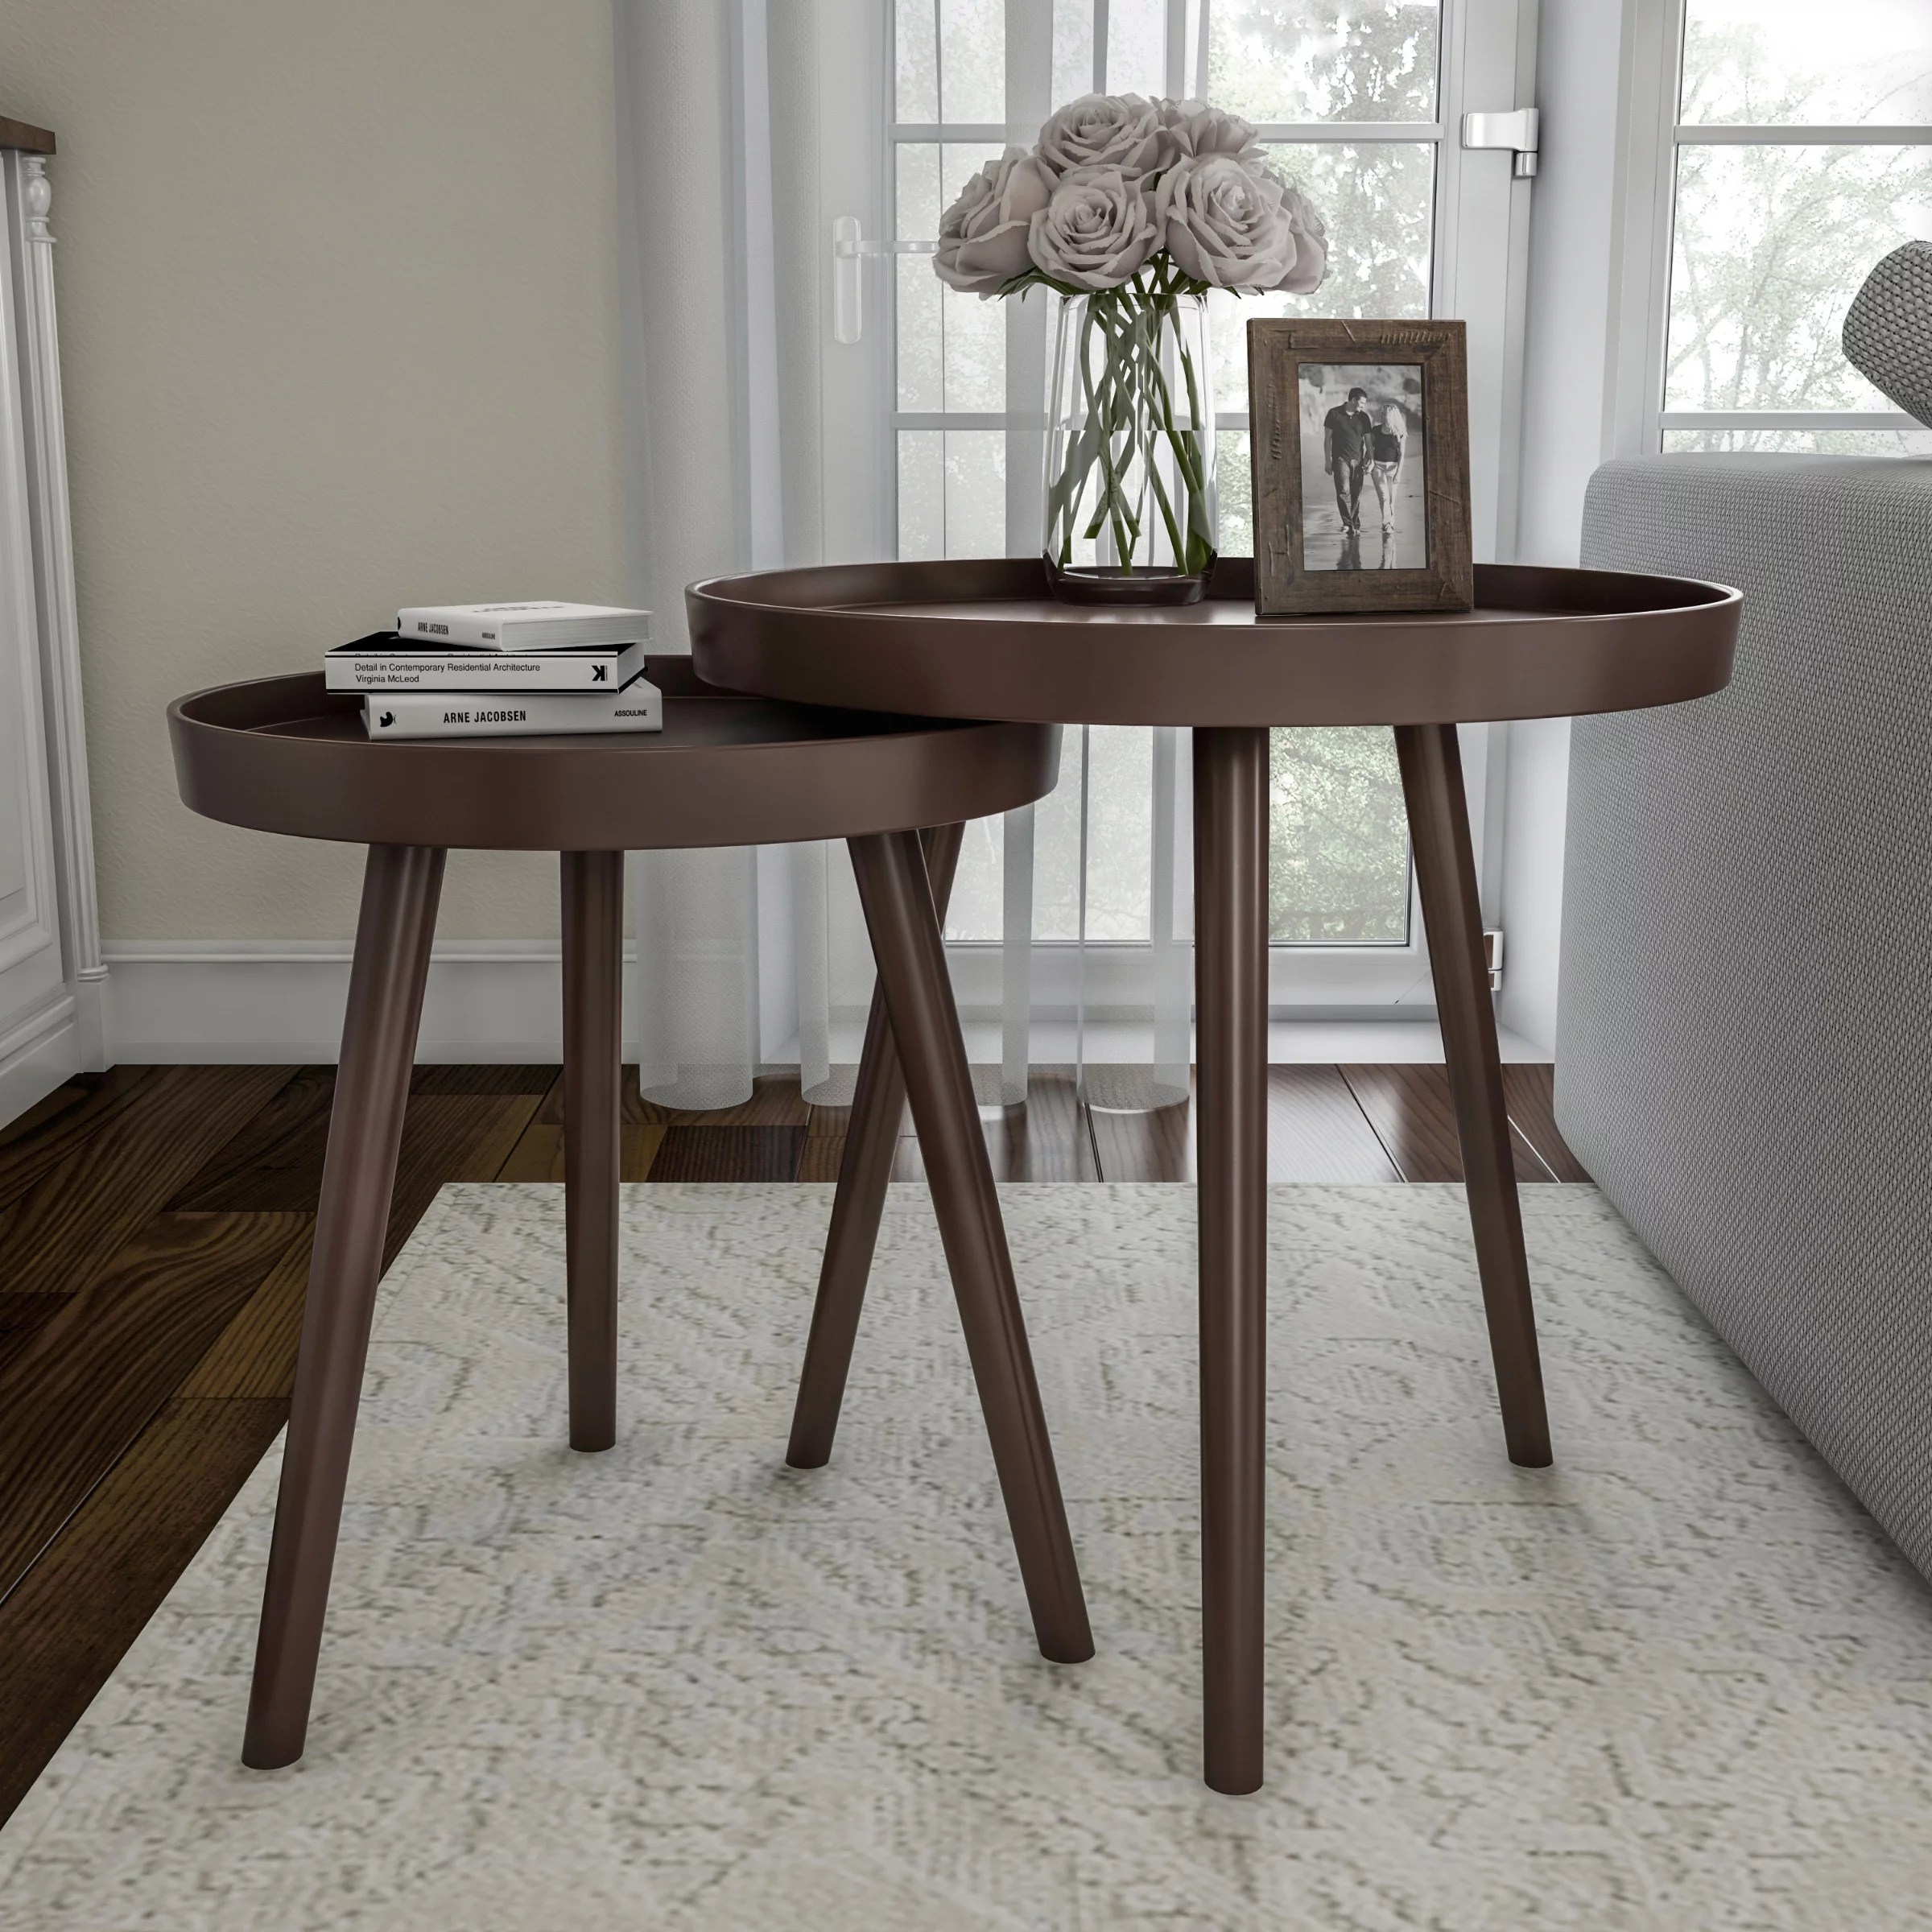 Nesting End Tables Set Of 2 Round Mid Century Modern Accent Table With Tray Top In Brown Side Table For Bedroom Living Room Office By Lavish Home Walmart Com Walmart Com